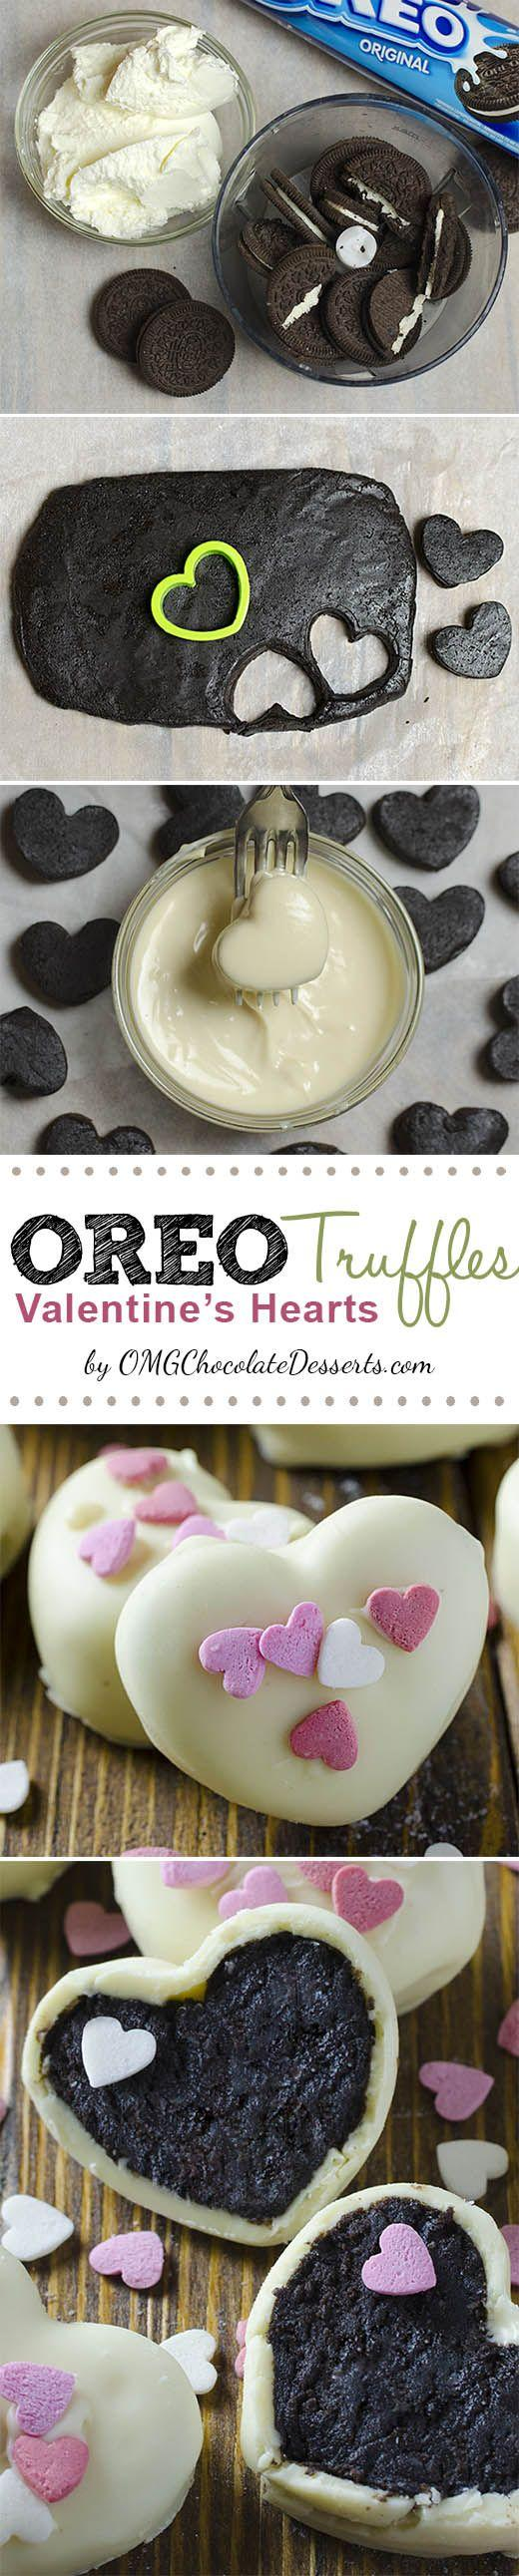 Wedding - Oreo Truffles Valentine's Hearts